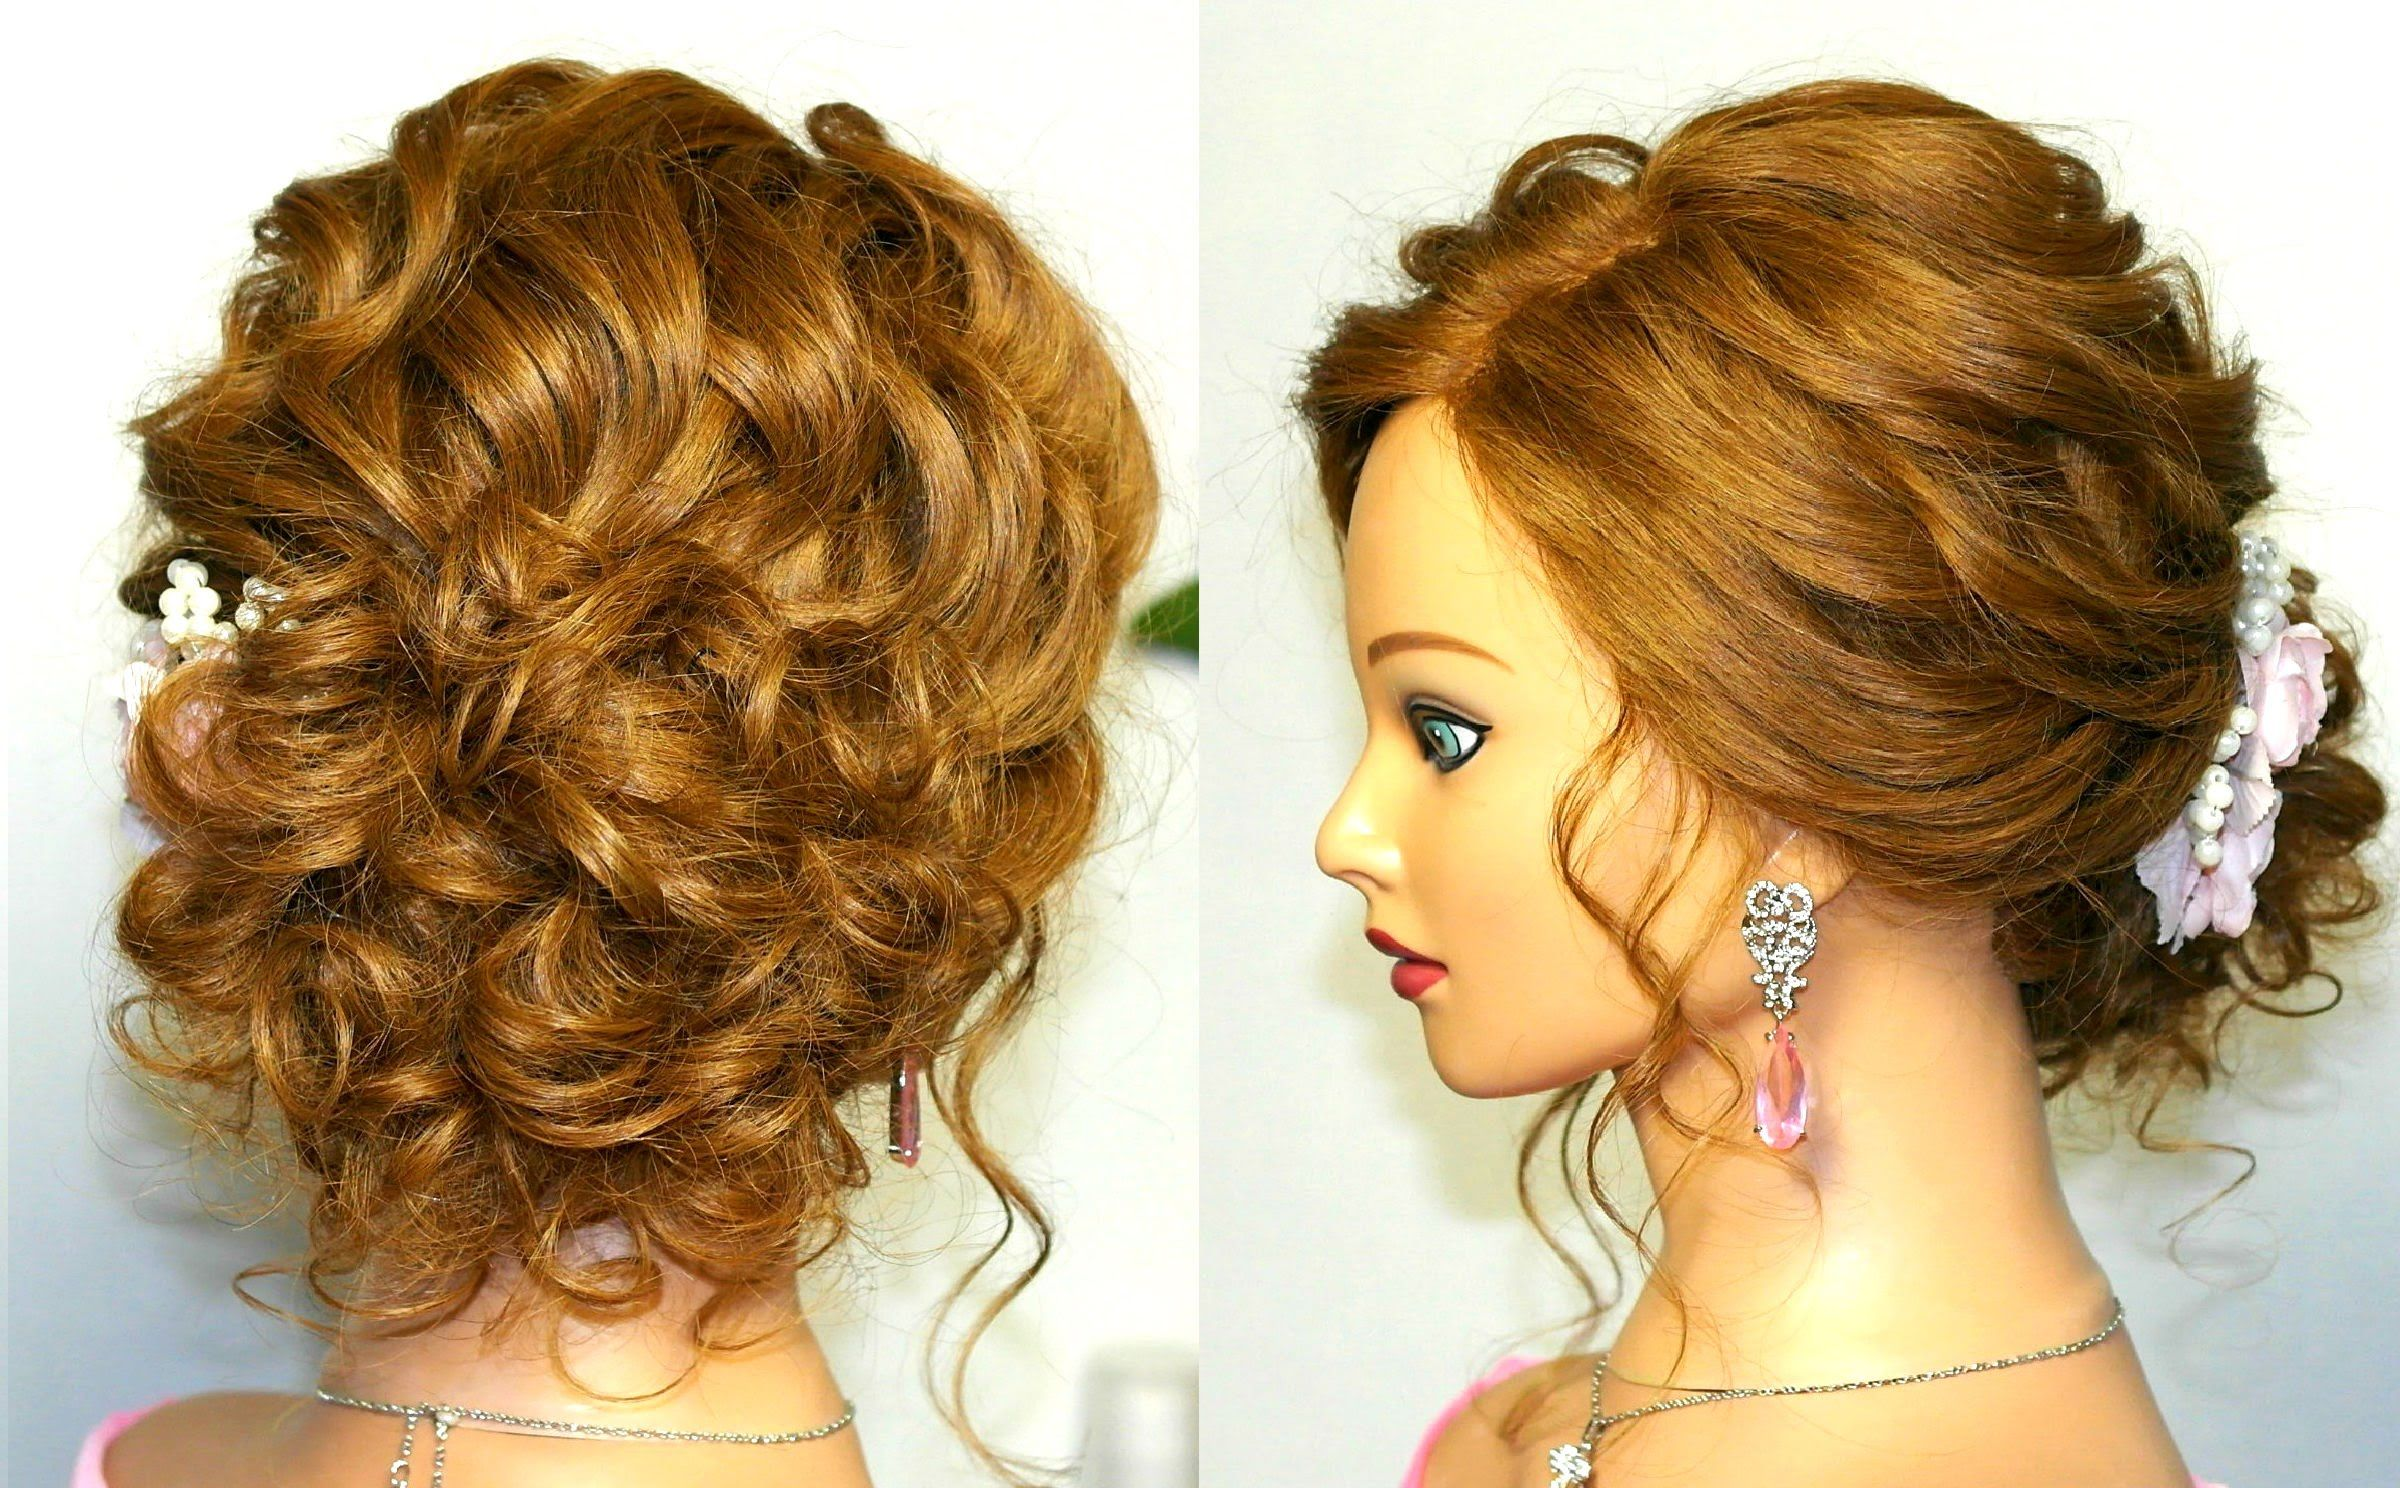 Prom wedding hairstyles updos for long medium hair Свадебная